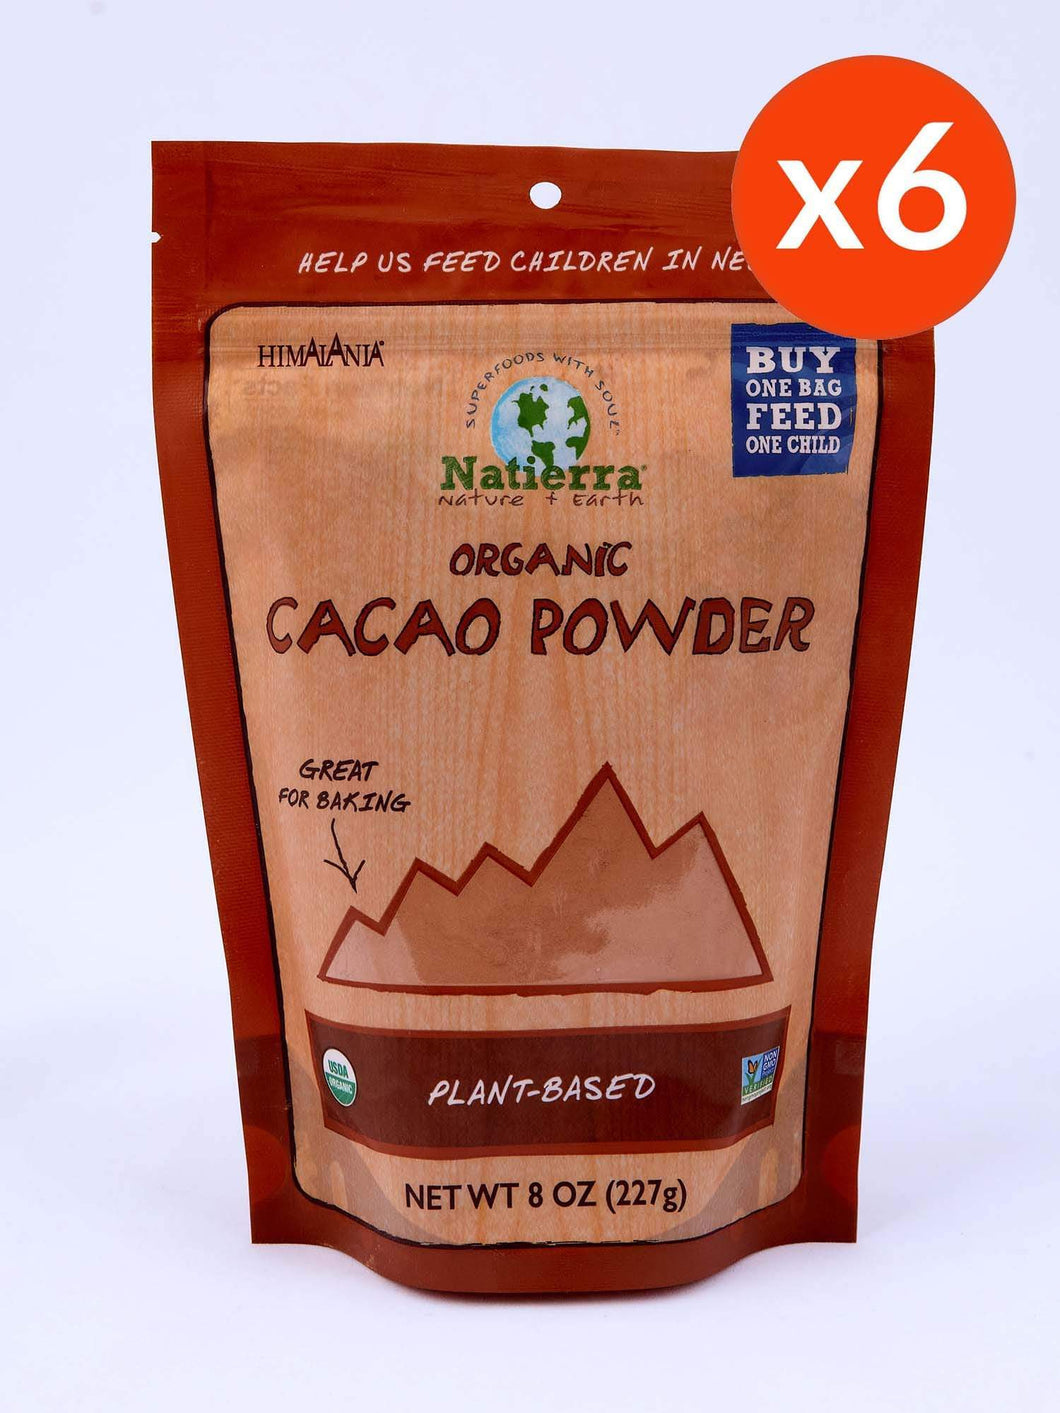 Natierra Cacao Powder Pouch (Pack of 6)